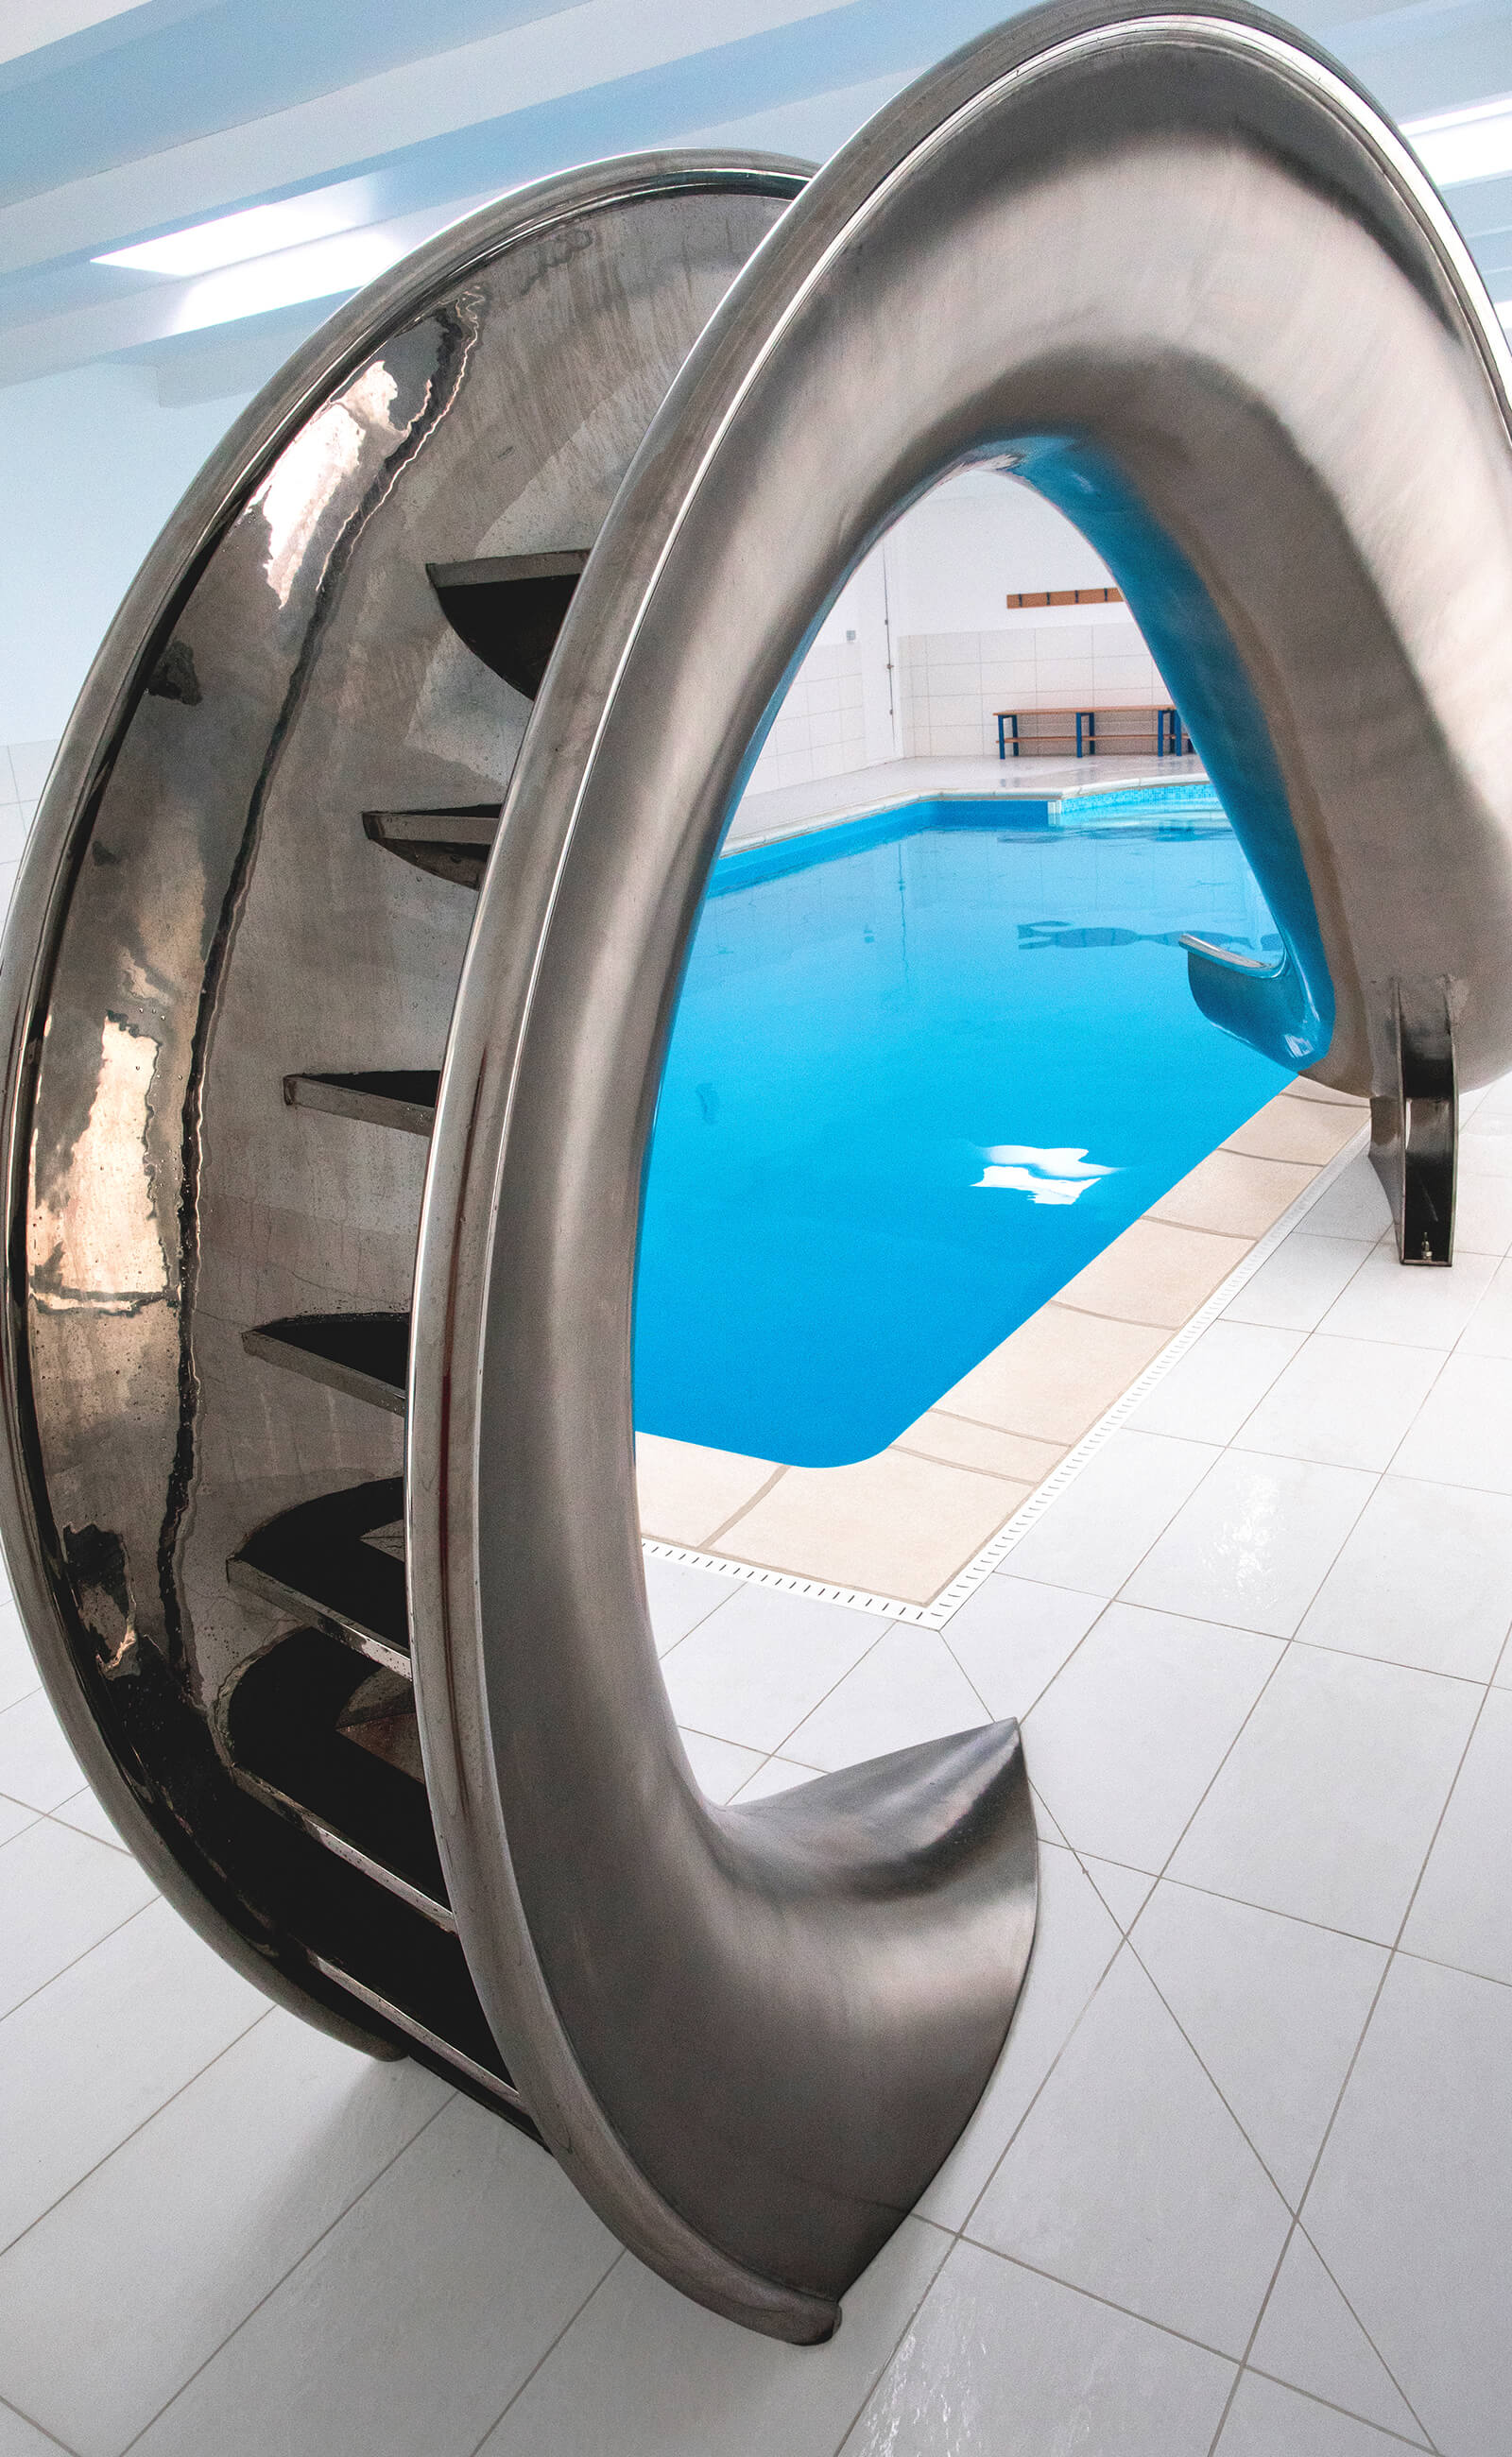 The easy to install fittings and integrated steps of the Waha pool slide.